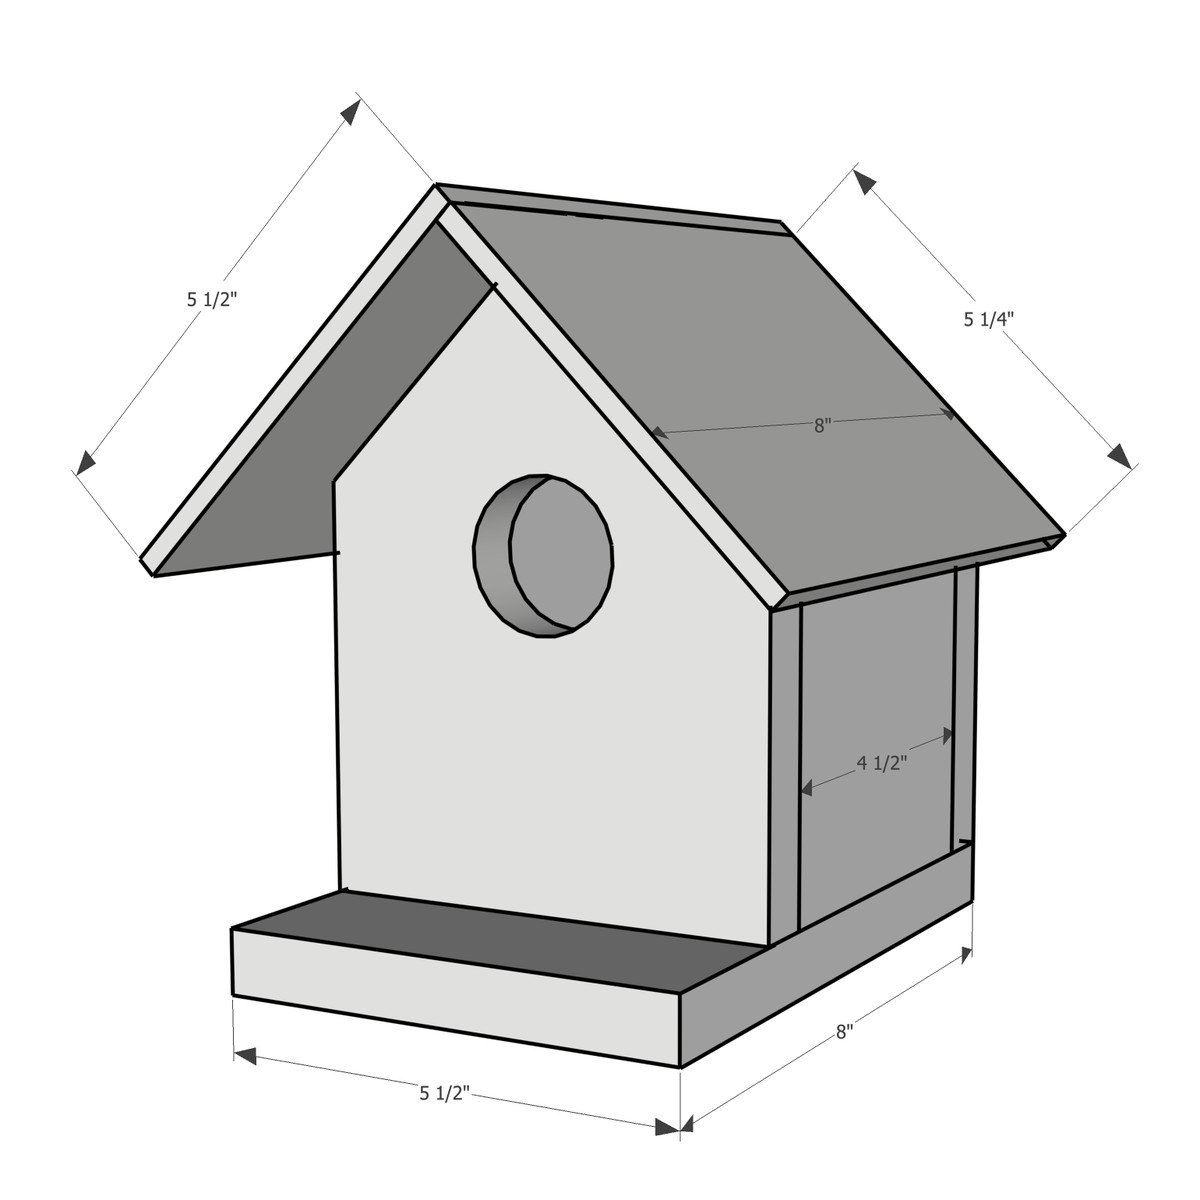 Dimensions for building a wooden birdhouse